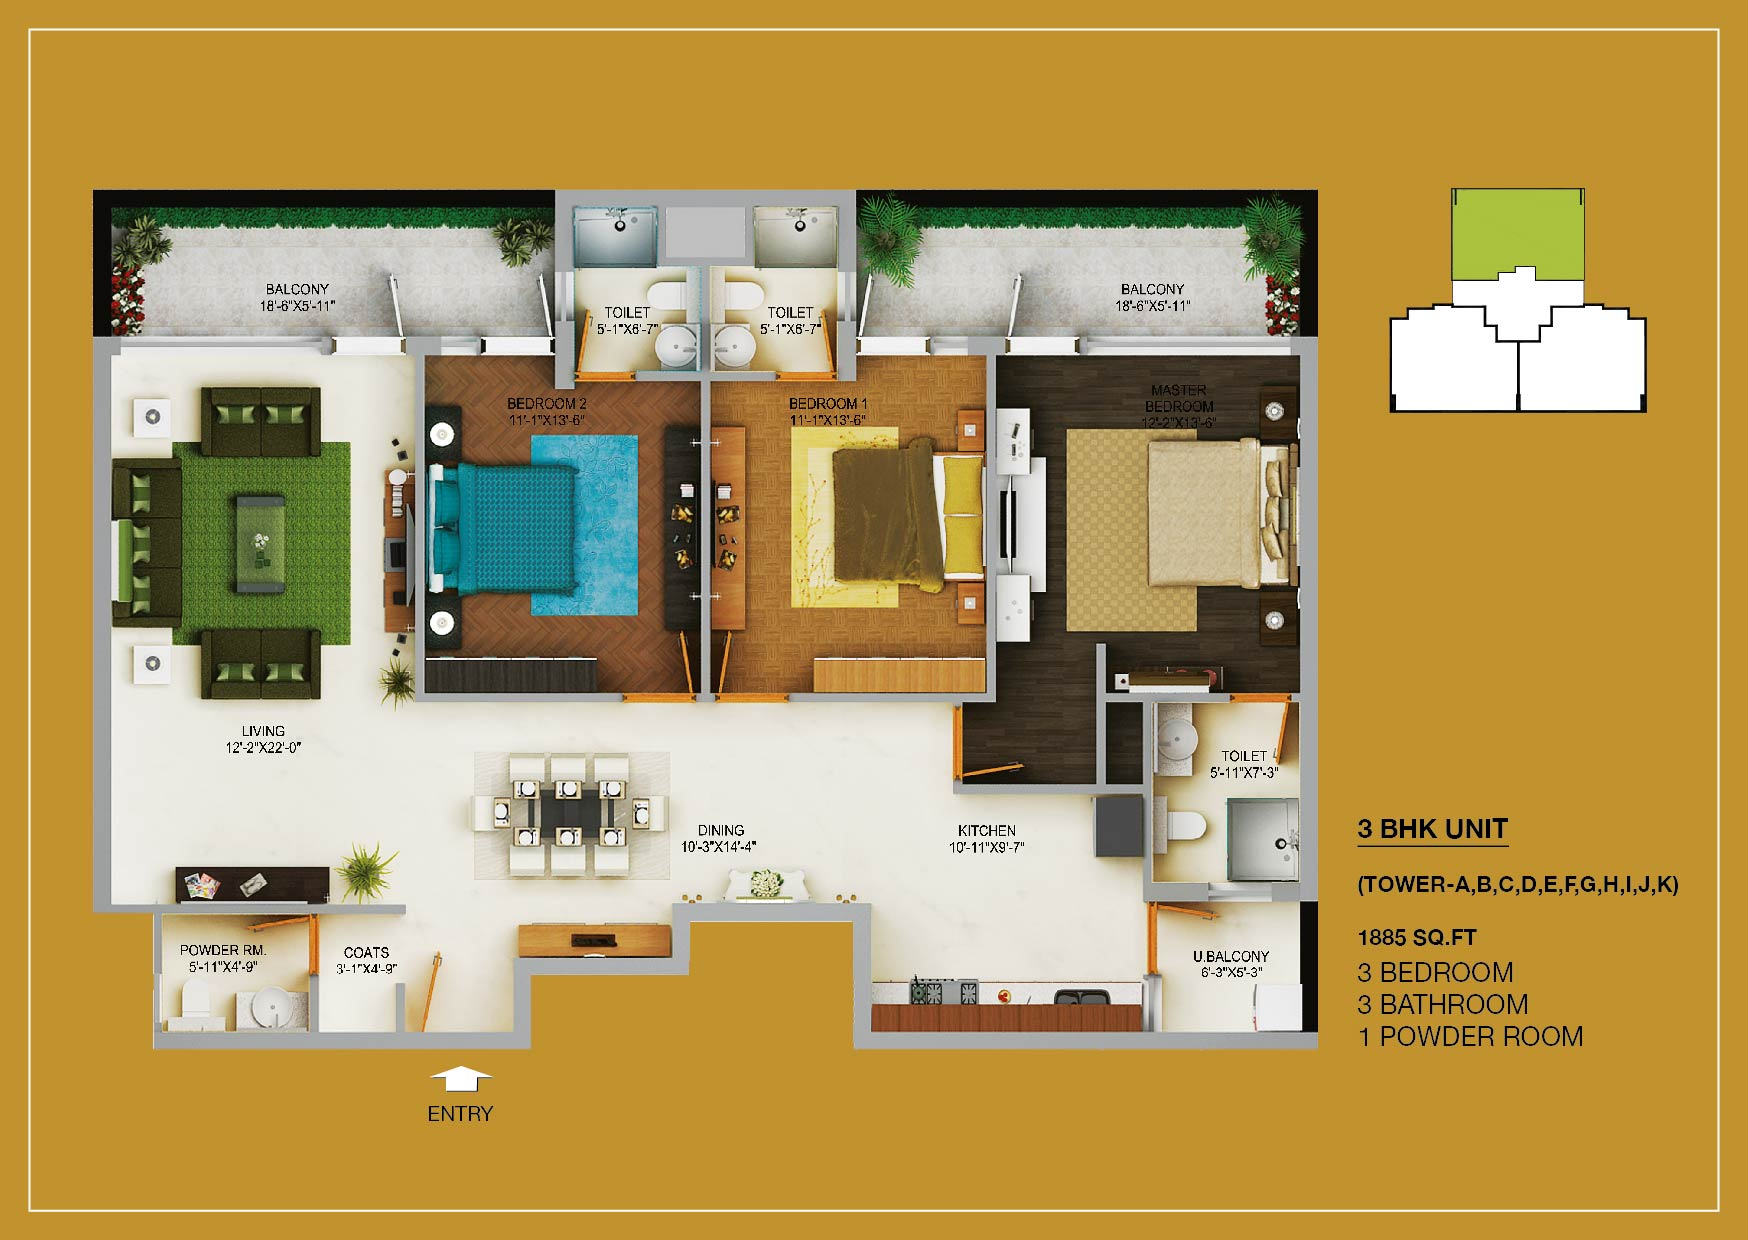 3BHK LAYOUT PLAN - 1885 SQ.FT.